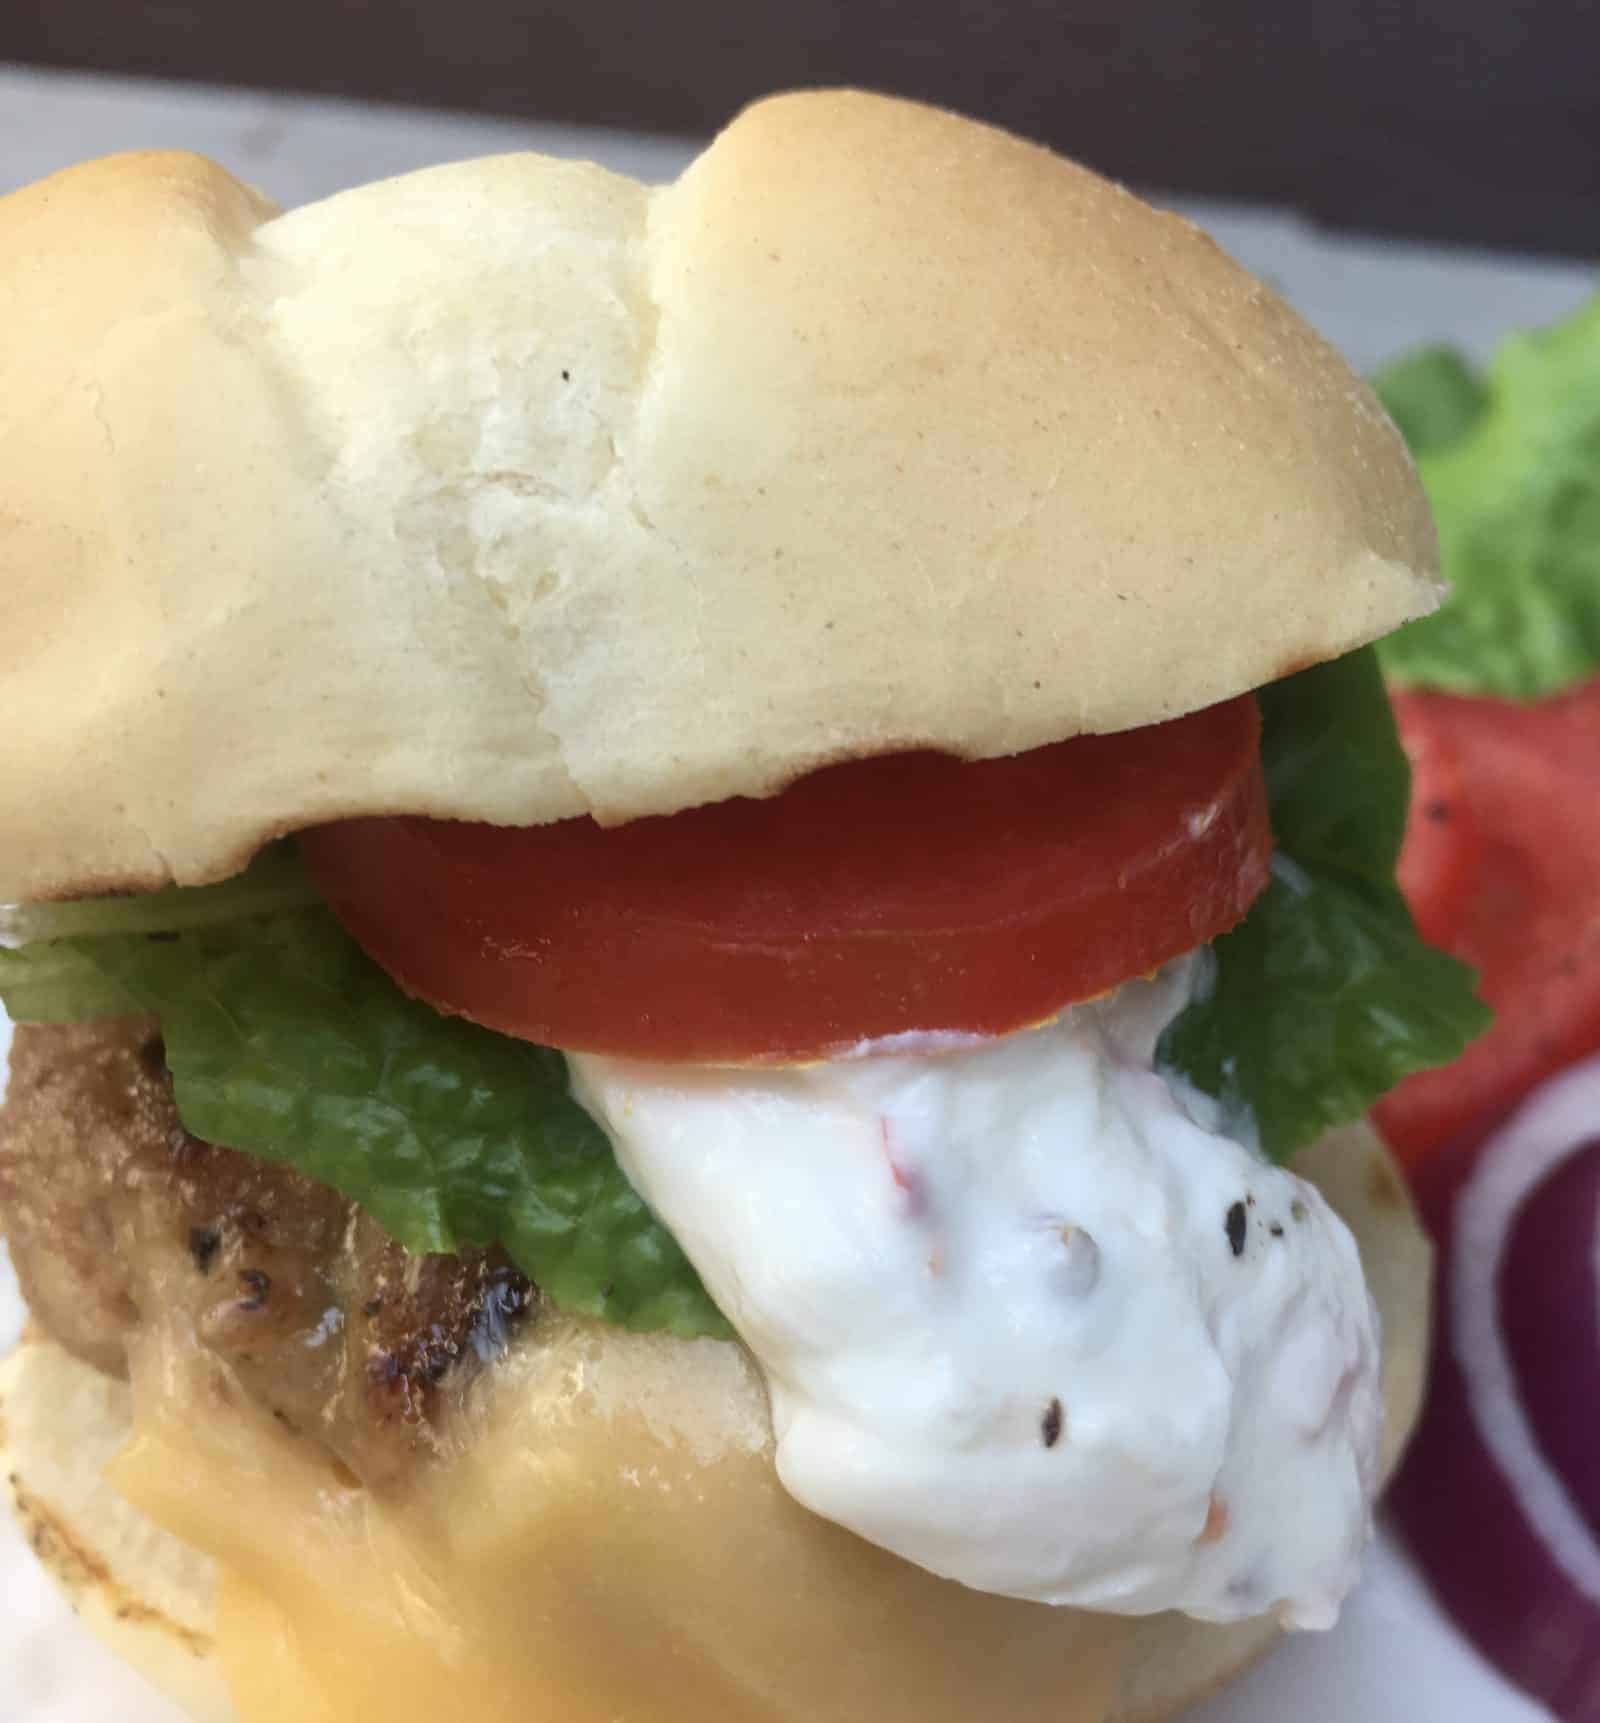 Scrumptious Turkey Slider from Gourmet Done Skinny with Jalapeno cream sliding off slider